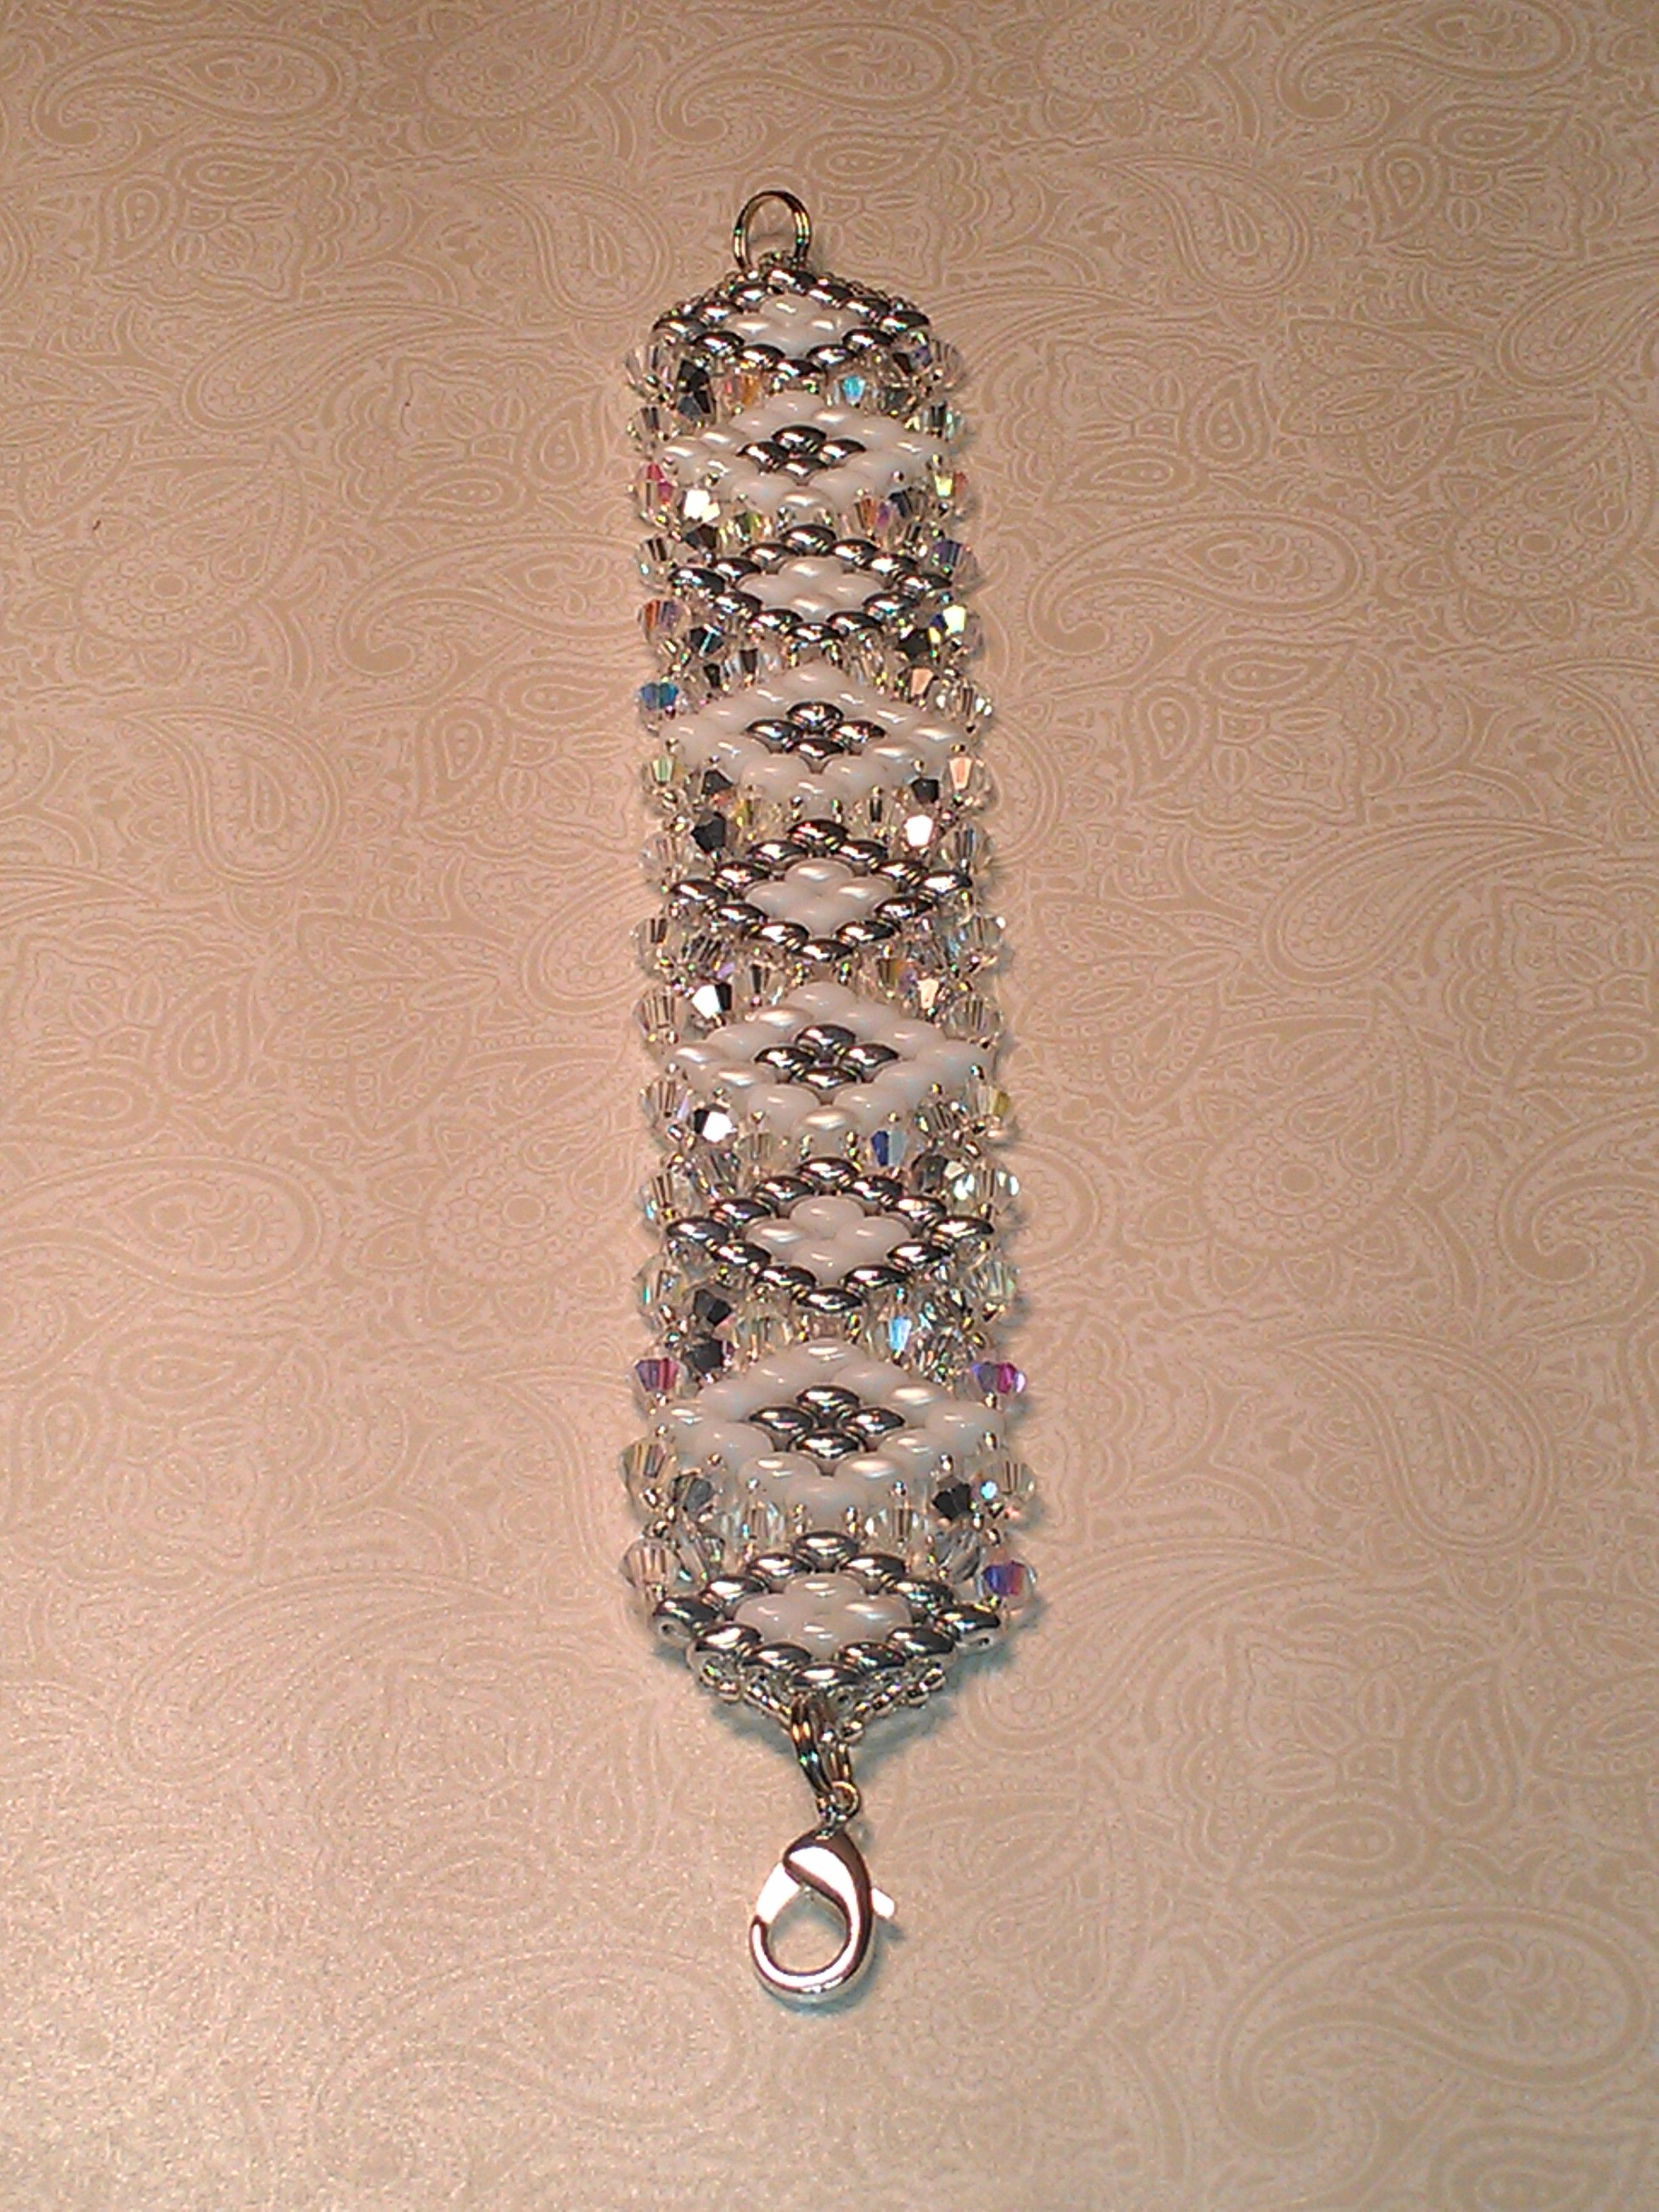 "A very big Thank You to  Aleshia from ""Beadifulnights"" youtube for a fantastic tutorial! ""Crystal Glitz"" bracelet in white and silver superduos with crystal ab and crystal argent flare 4mm bicones. I used crystal ab 11/0 Czech seed beads.  This pattern can be done in so many different ways. The photo does not really show how this one sparkles with all the beautiful crystals."